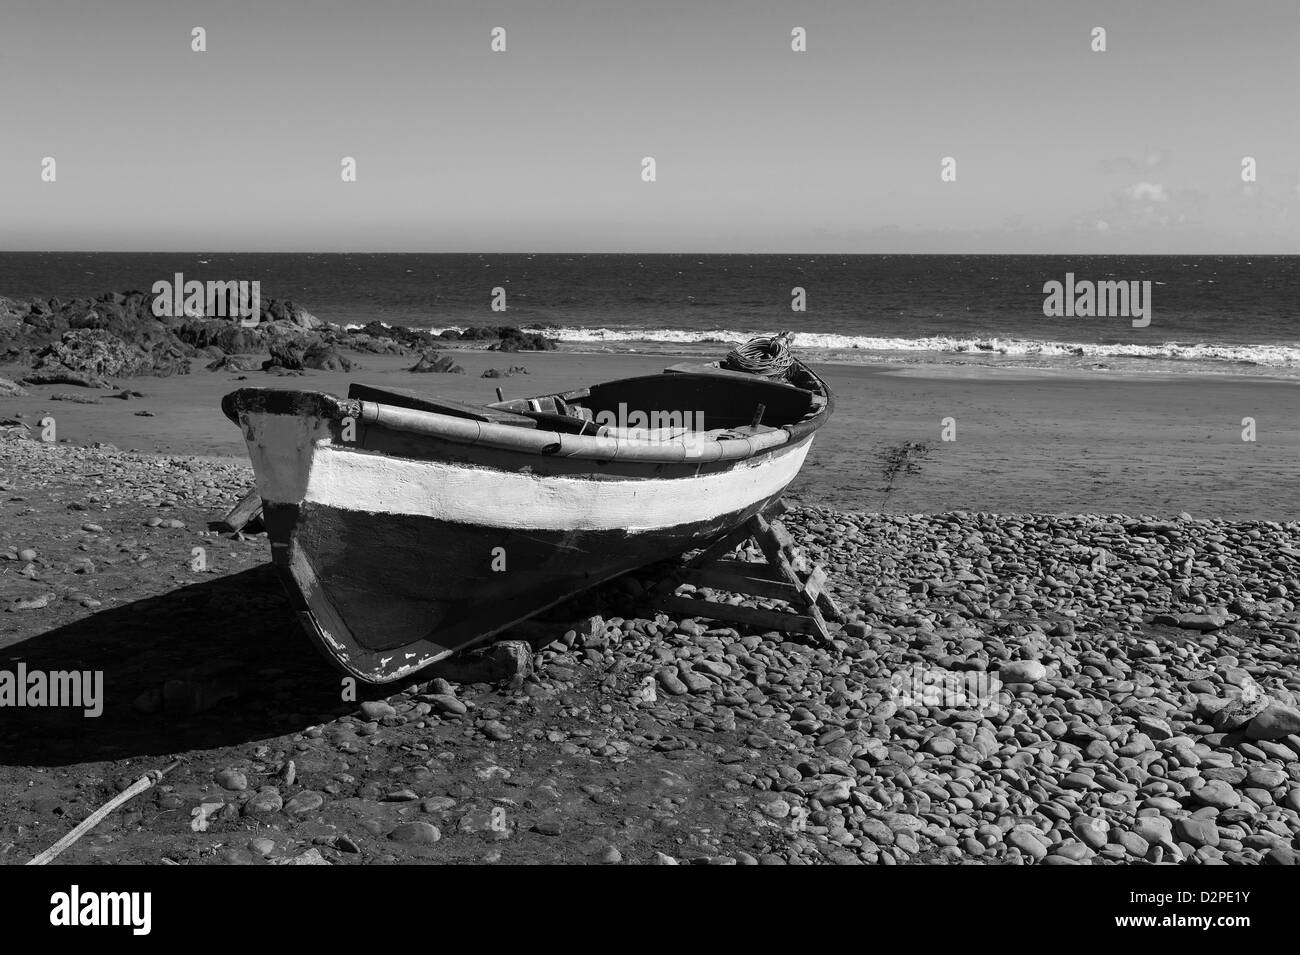 View of  old fishing boat, onto an oceanic beach, Gran Canaria, Canary Islands, Spain - Stock Image